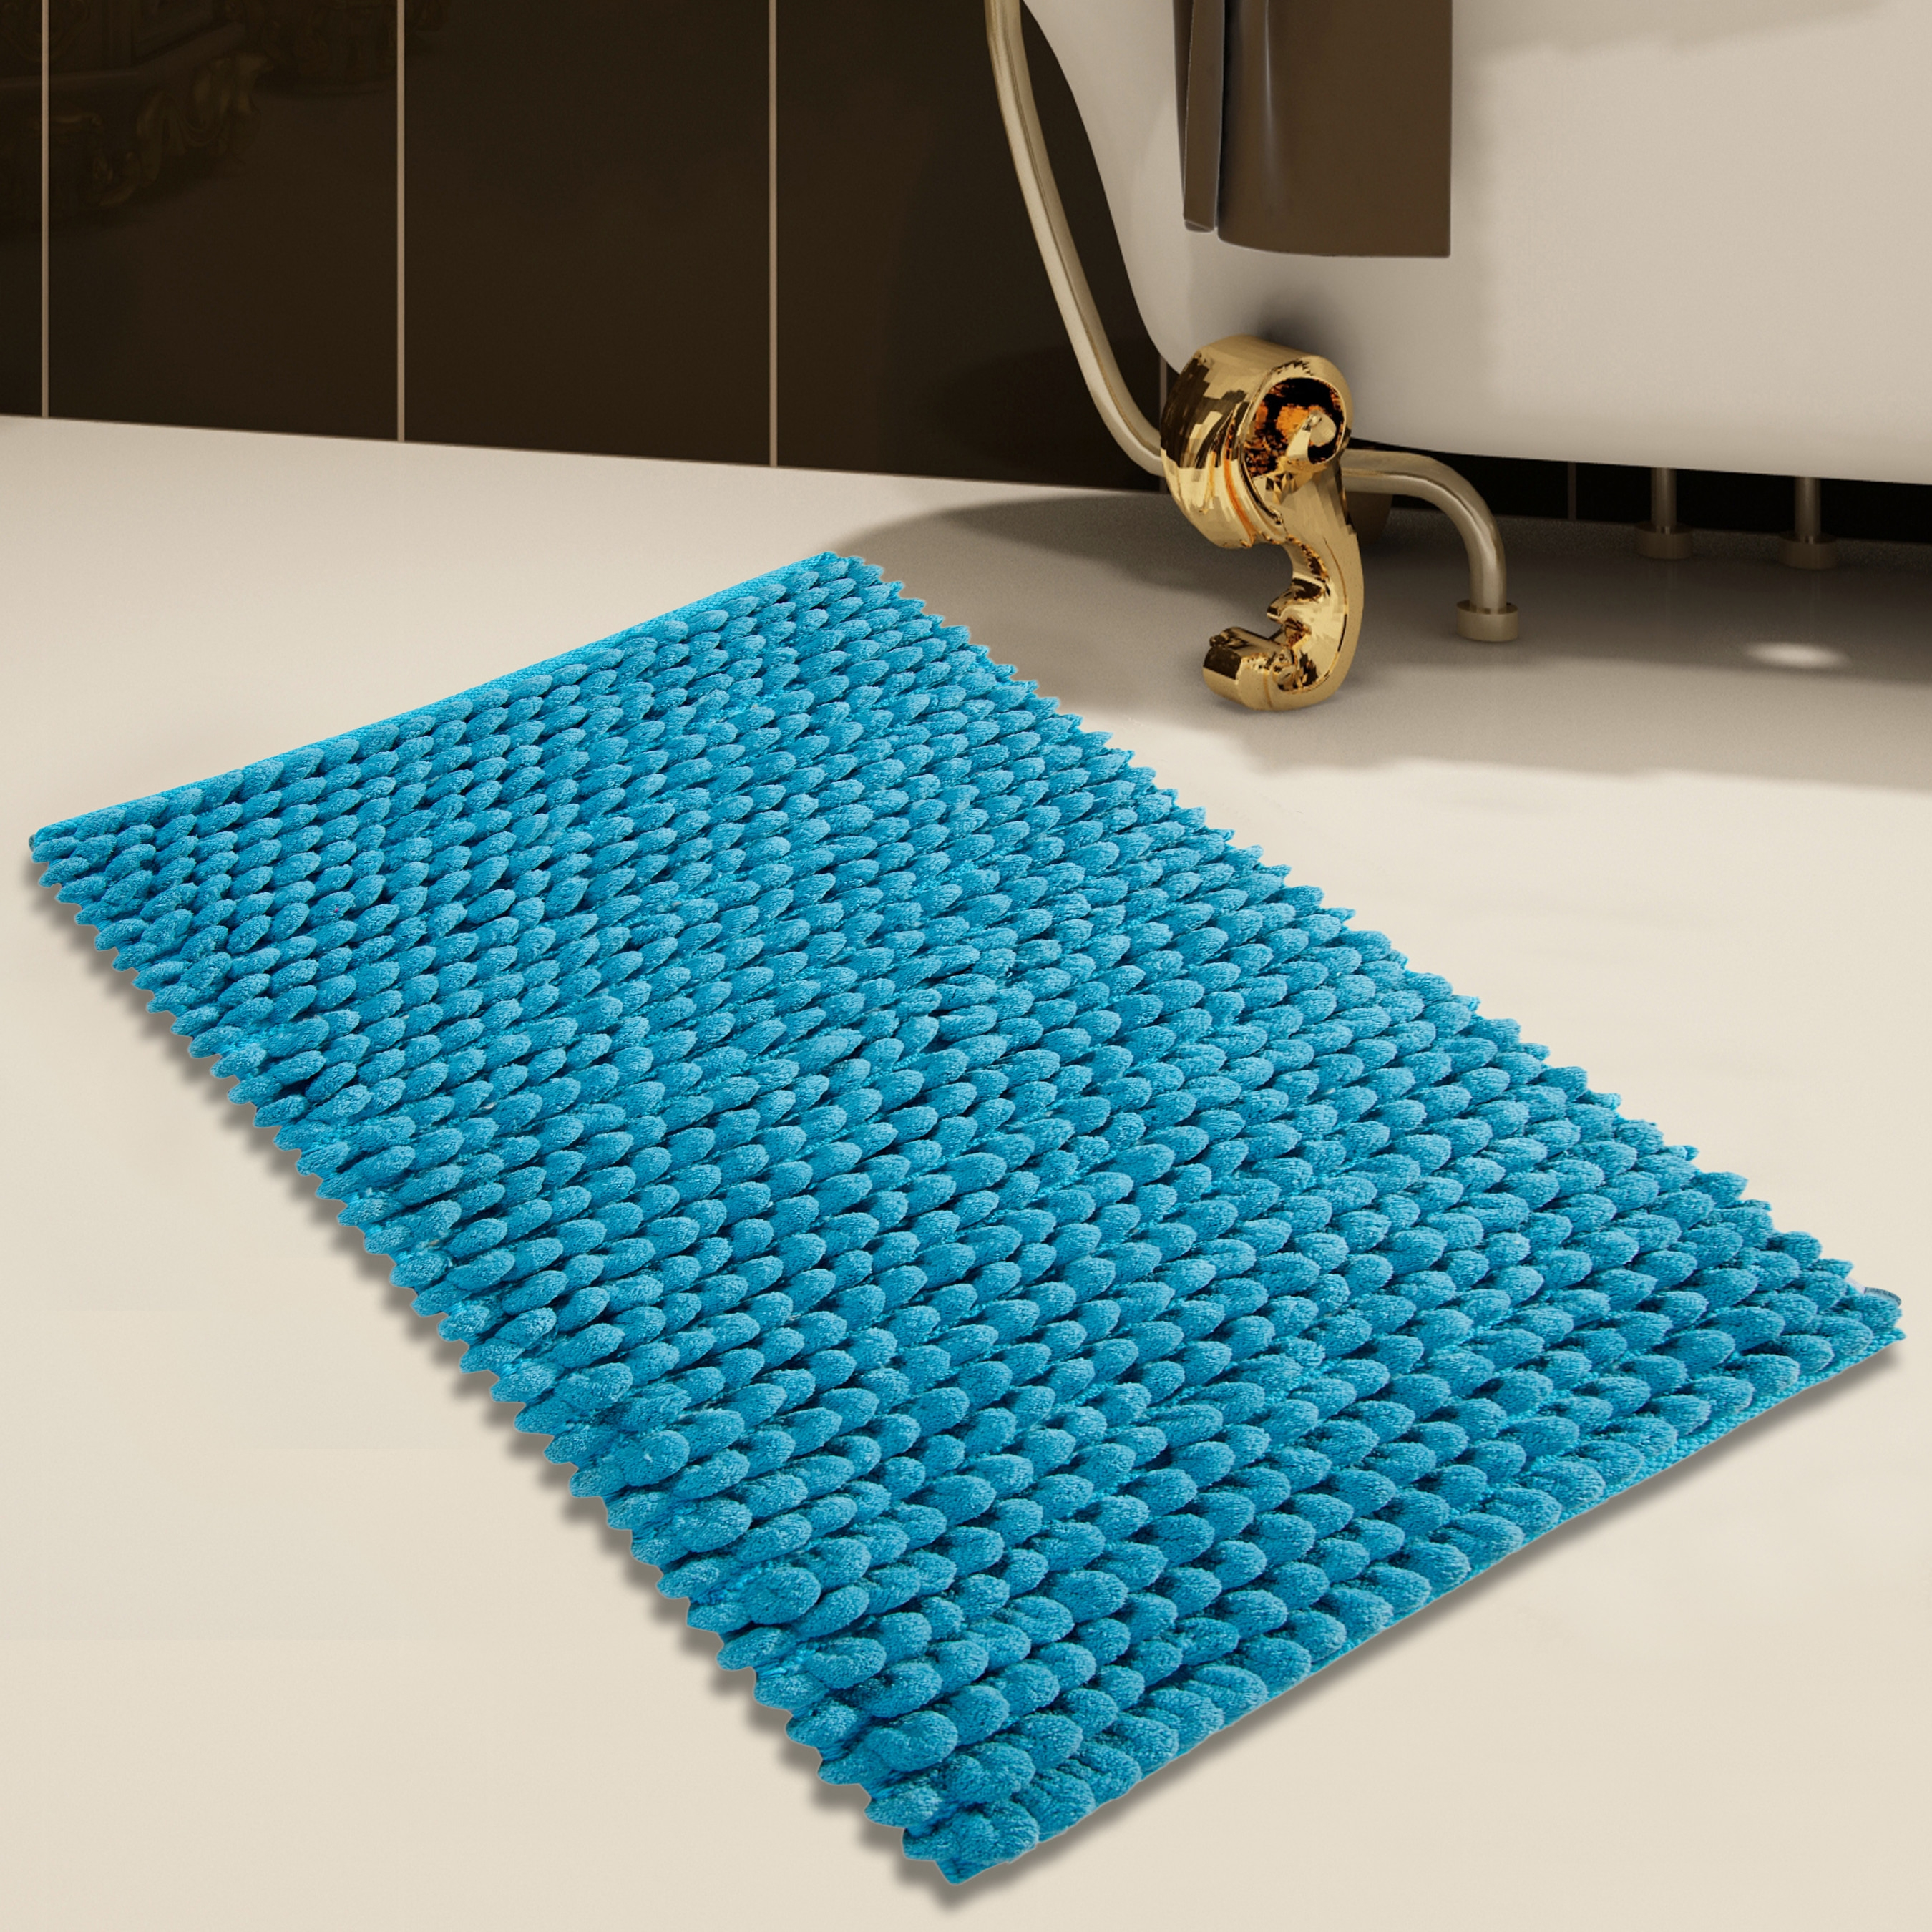 Permalink to Cobalt Blue Bathroom Rugs